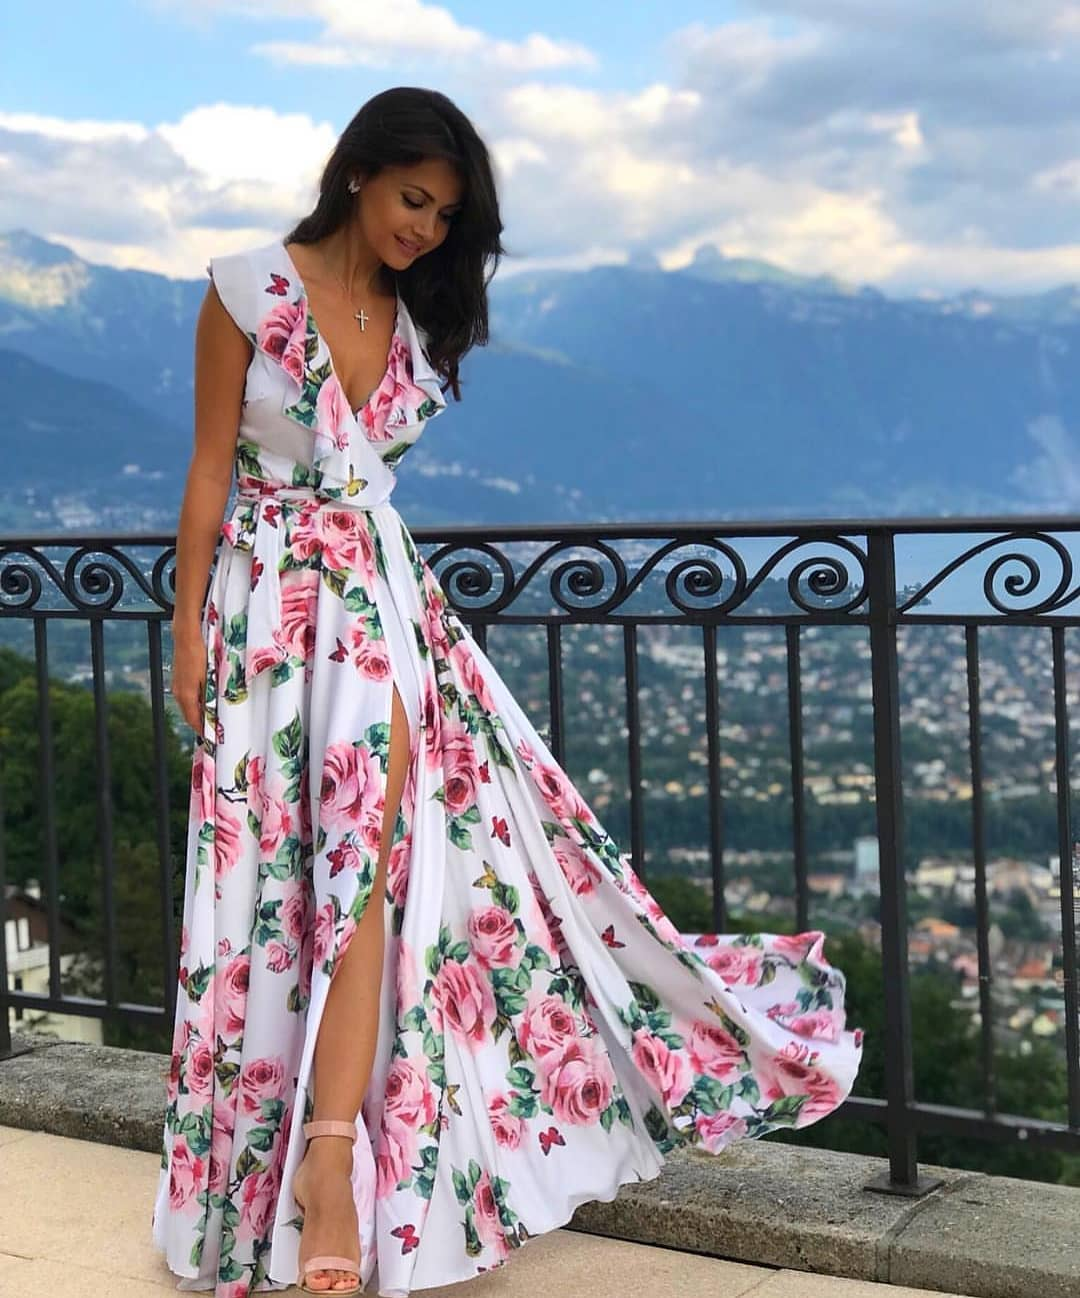 Wrap White Maxi Dress In Floral Print With High Slits For Summer Vacation 2019